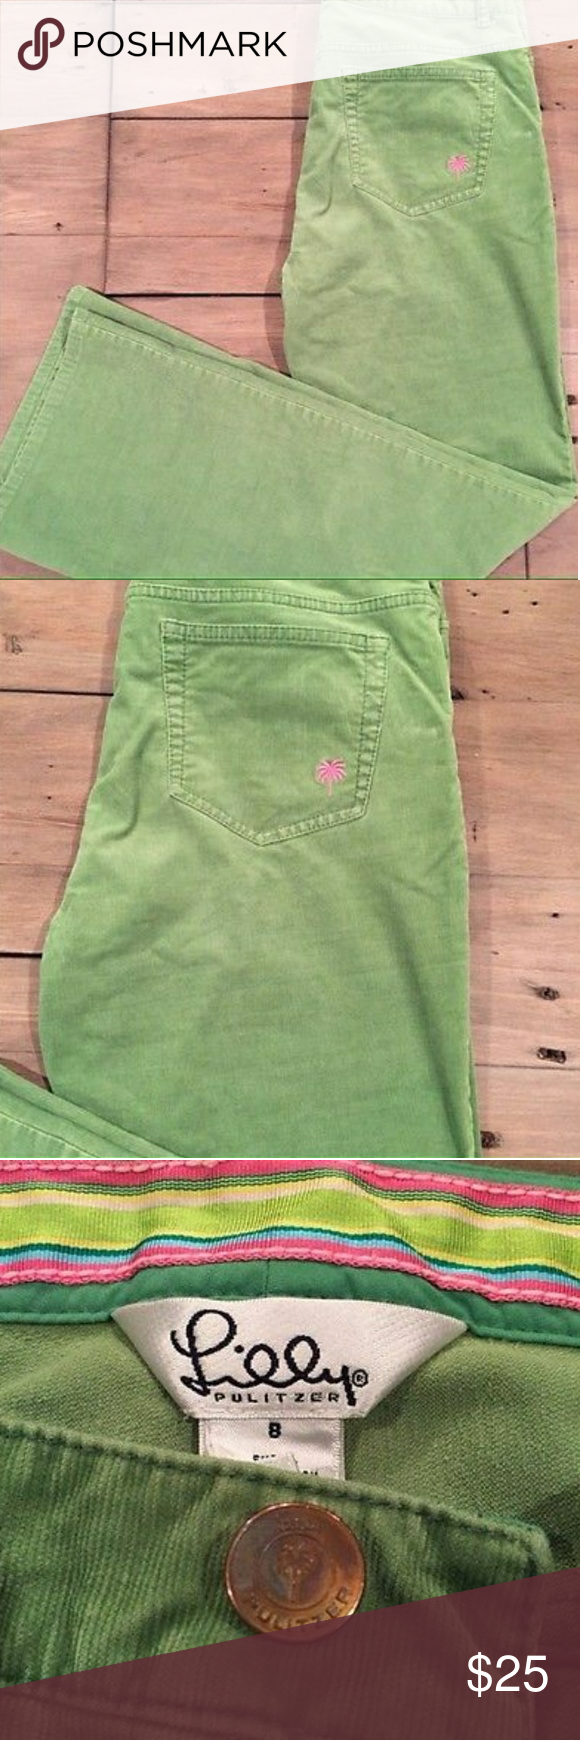 LILLY PULITZER GREEN CORDY PANTS Beautiful Lilly Pulitzer green corduroy Pants with pink palm logo embroidered on back pocket. Goes perfectly with her sweaters! These would be great preppy pants for spring outfits or to wear golfing! True Size 8. Lilly Pulitzer Pants